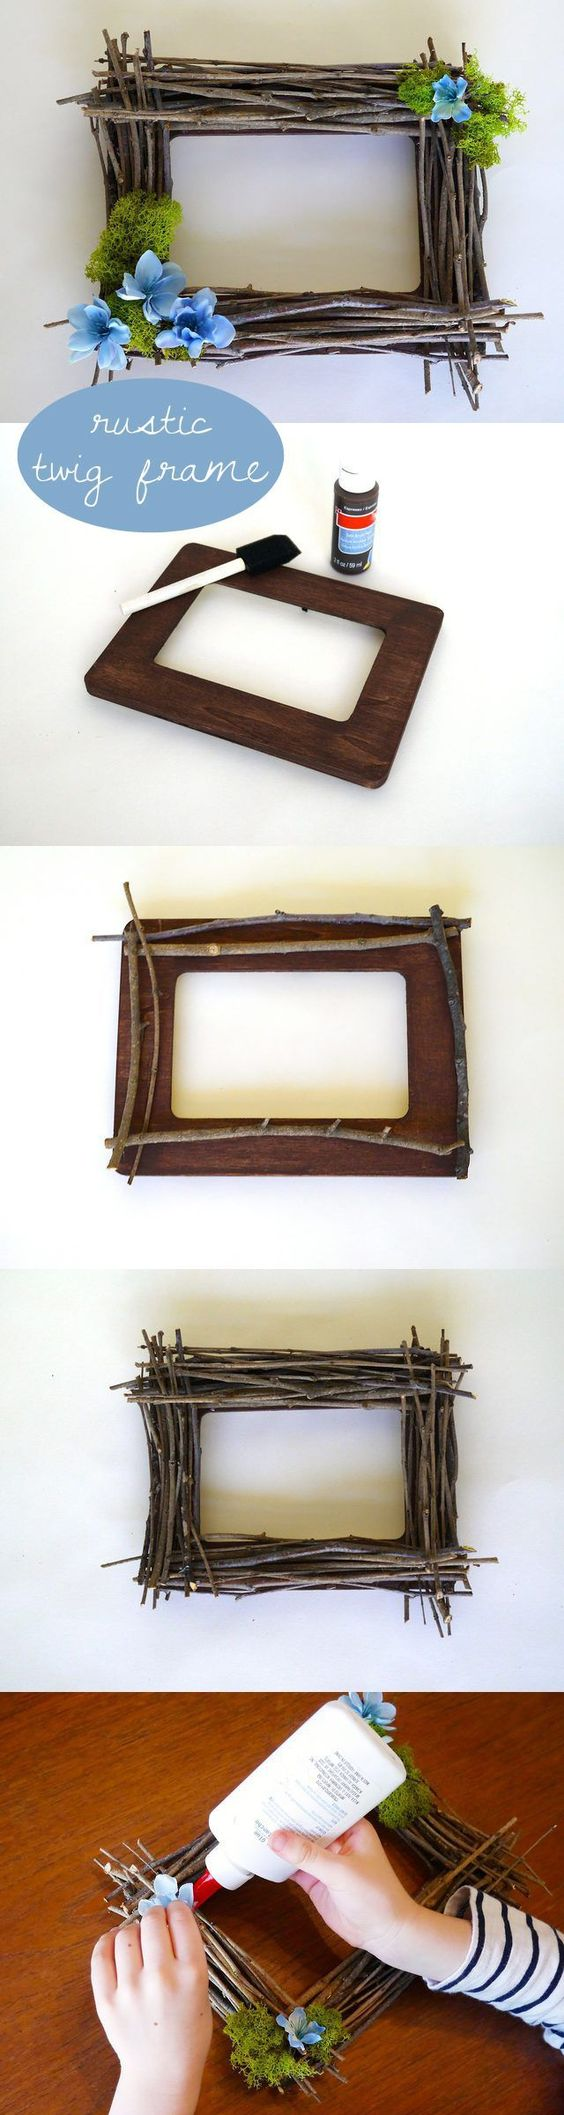 6 Awesome Twig Crafts for Kids With Lots of Tutorials